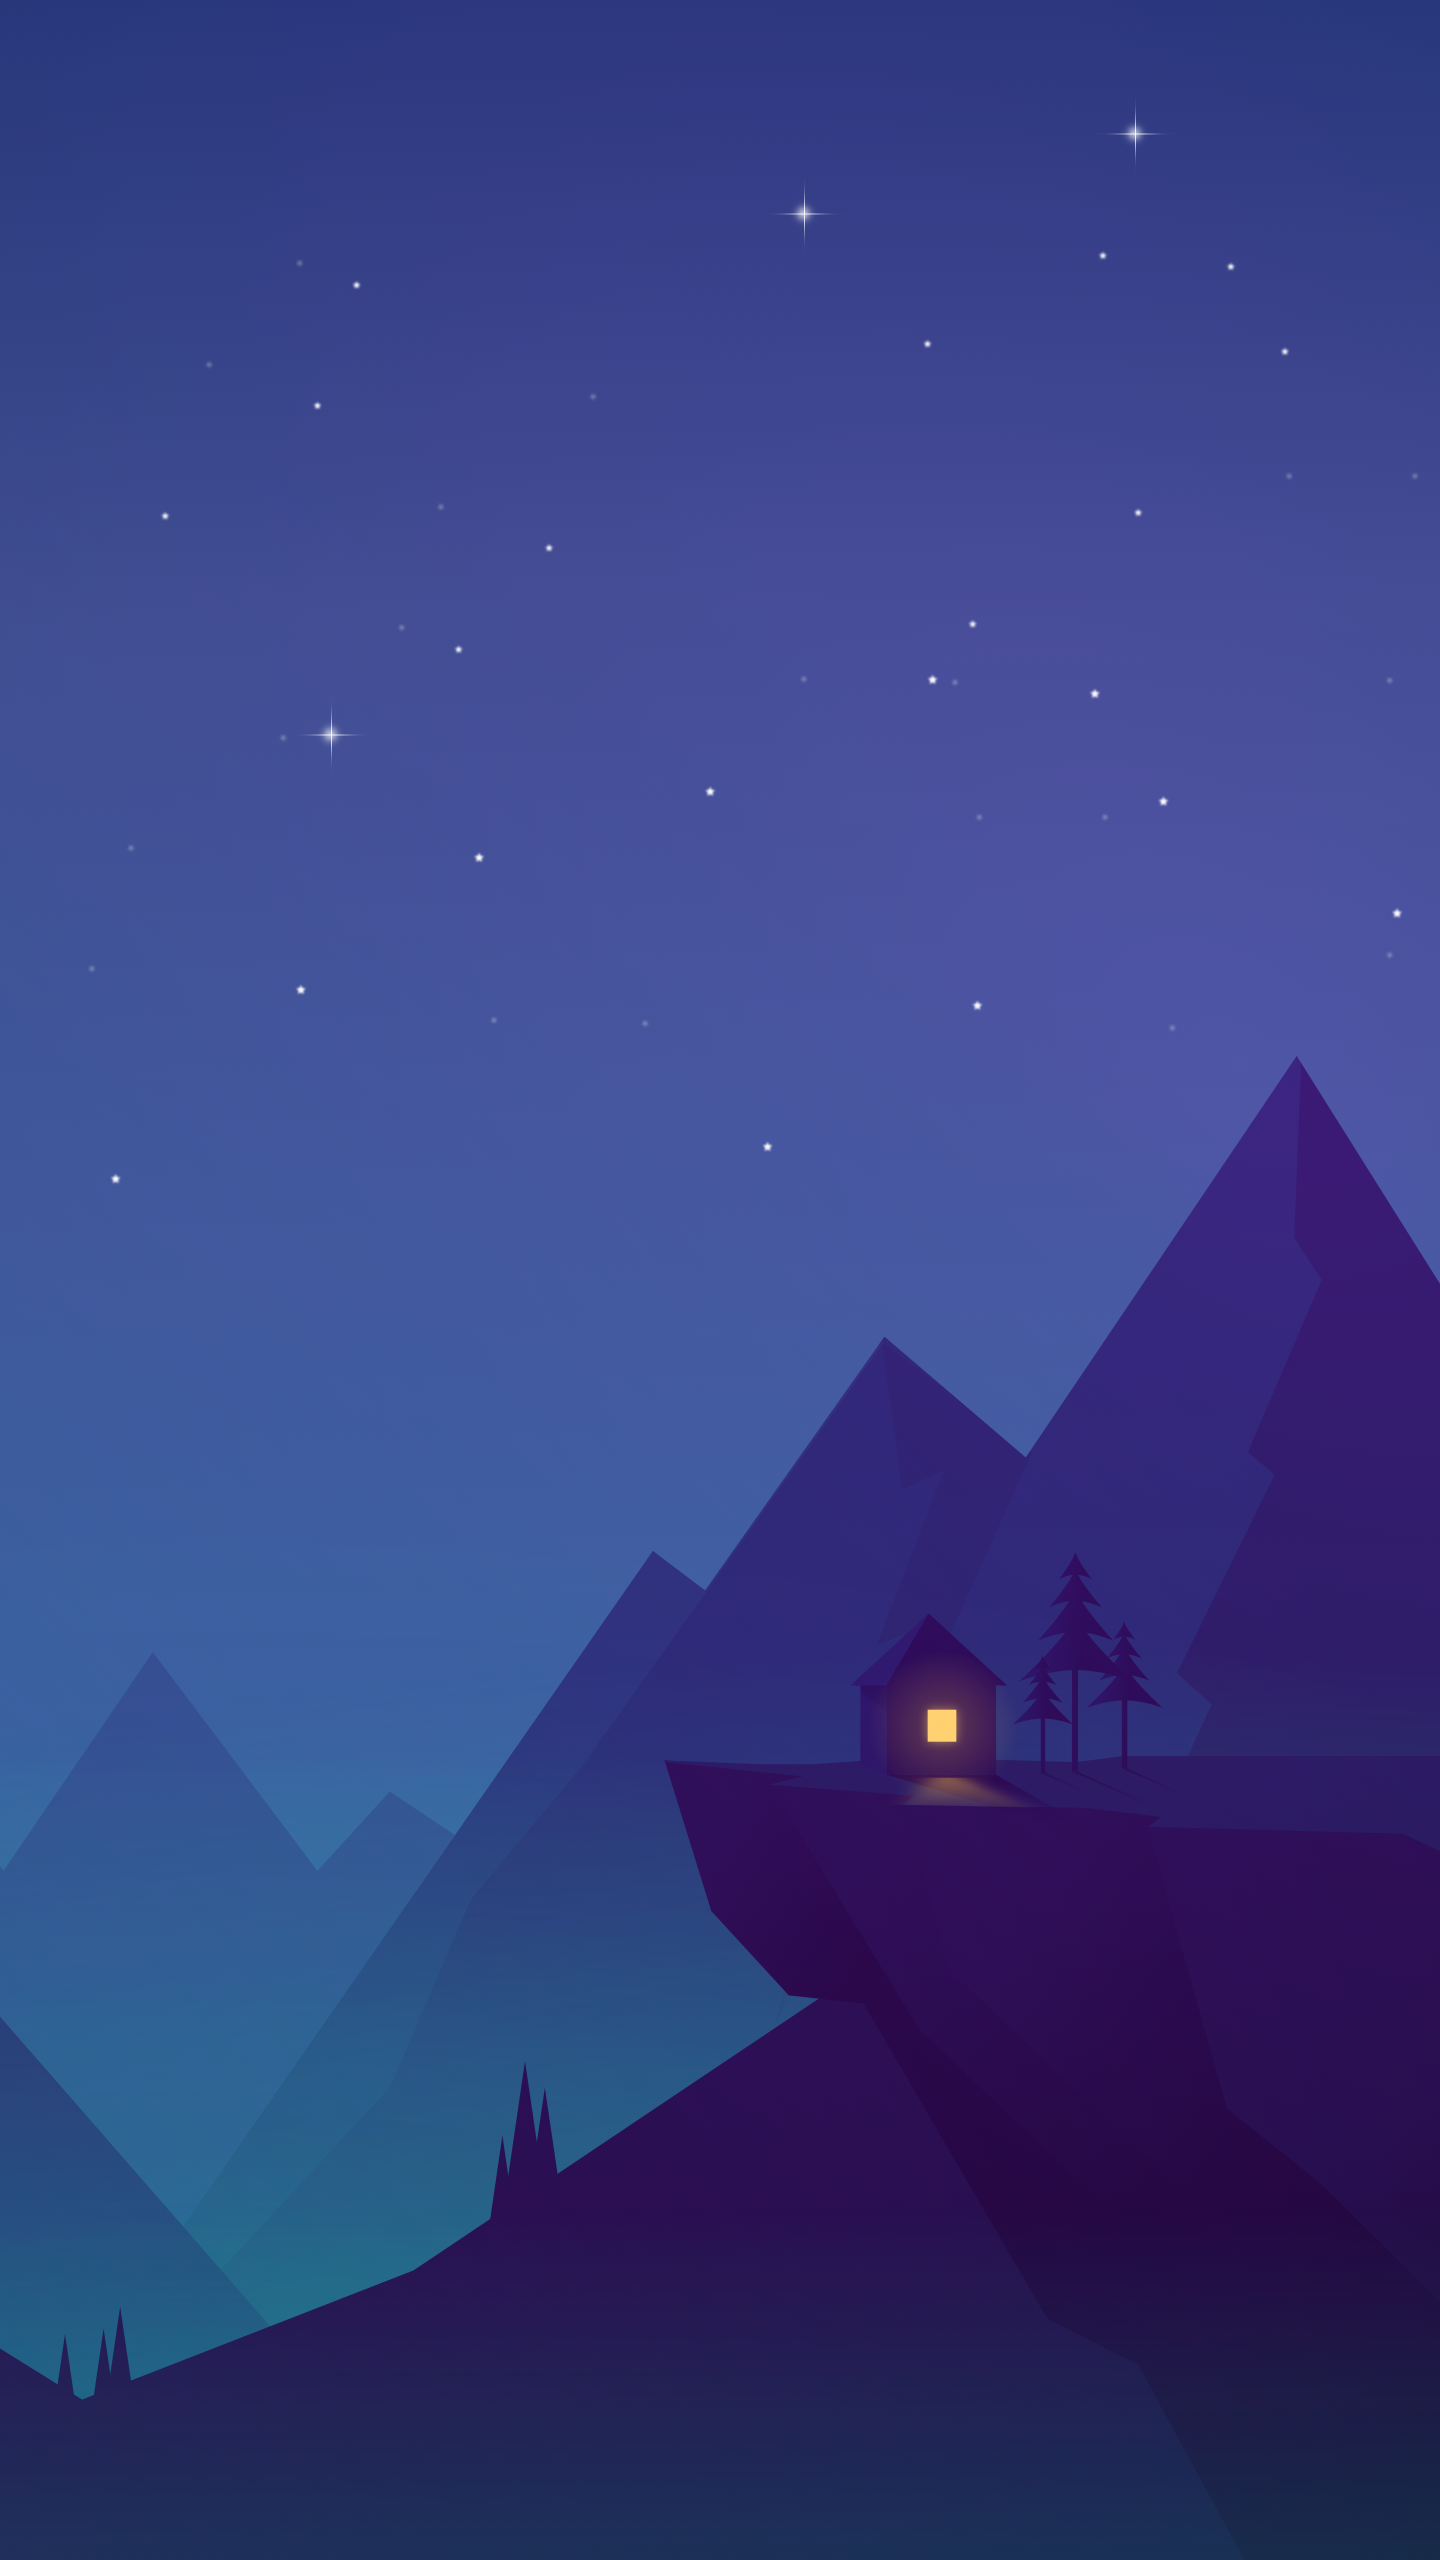 midnightinthevalley-mobile.png by Cagri Yurtbasi